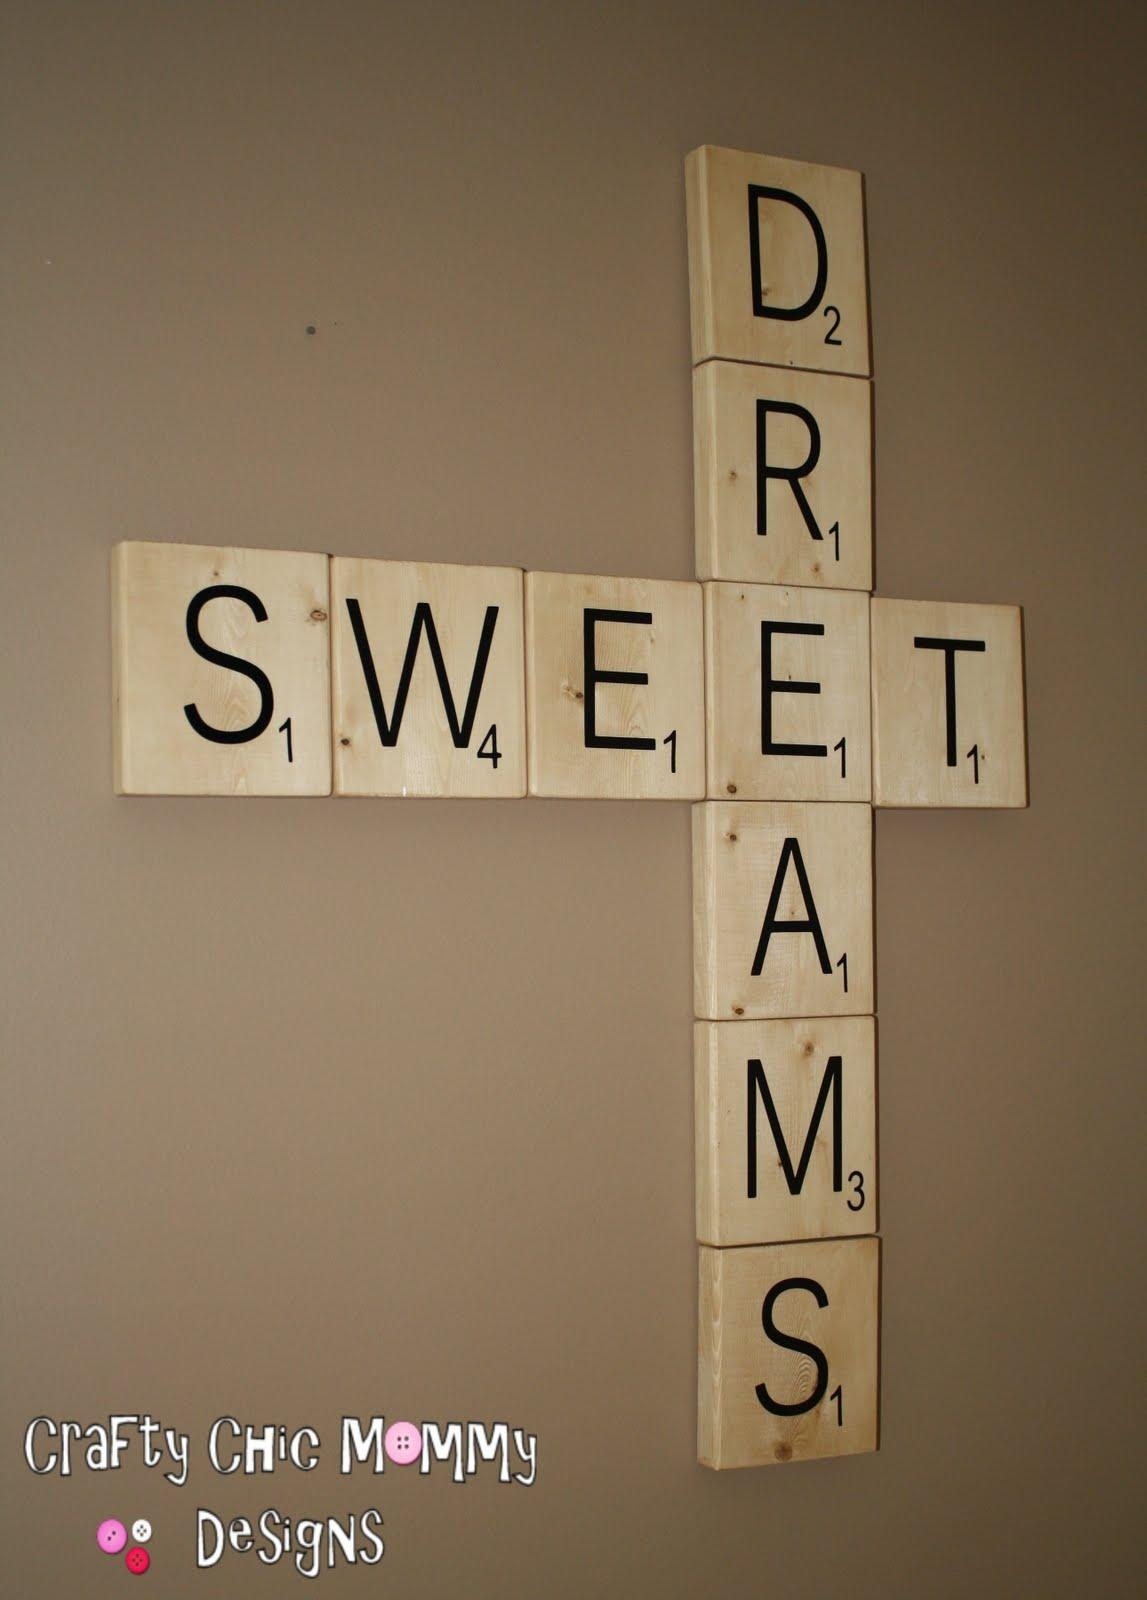 Crafty Chic Mommy: Giant Scrabble Tiles Tutorial With Regard To Scrabble Letter Wall Art (Image 3 of 20)